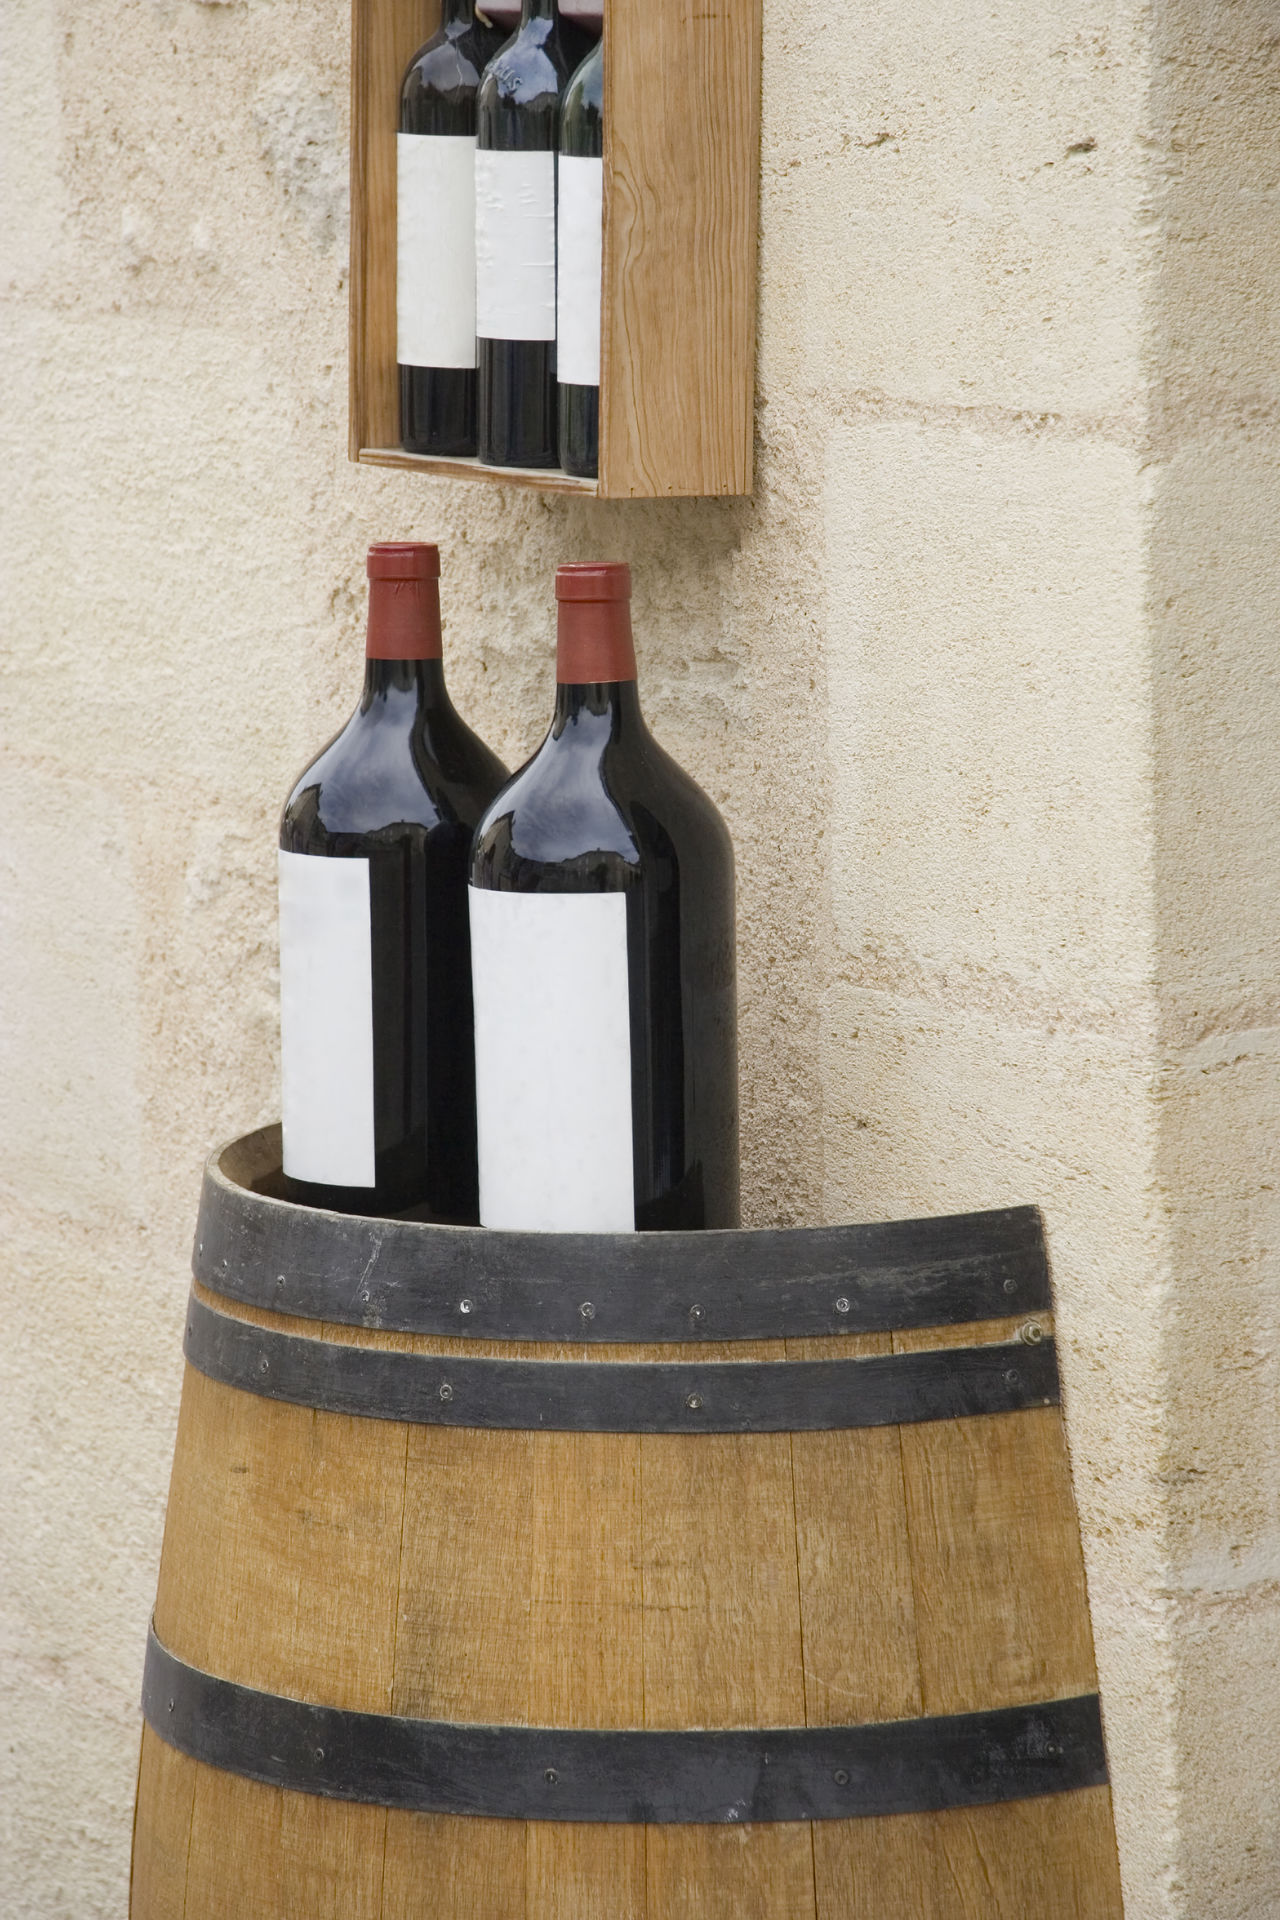 3 l wine bottles on a wine cask - saint-emilion, france Alcohol BIG Blank Label Bordeaux Château Drink For Sale France Grand Cru Merlot No People Outdoors Rack Red Wine Retail  Saint-Emilion Store Storefront Wine Wine Barrels Wine Bottle Wine Bottles Wine Moments Winemaking Winery